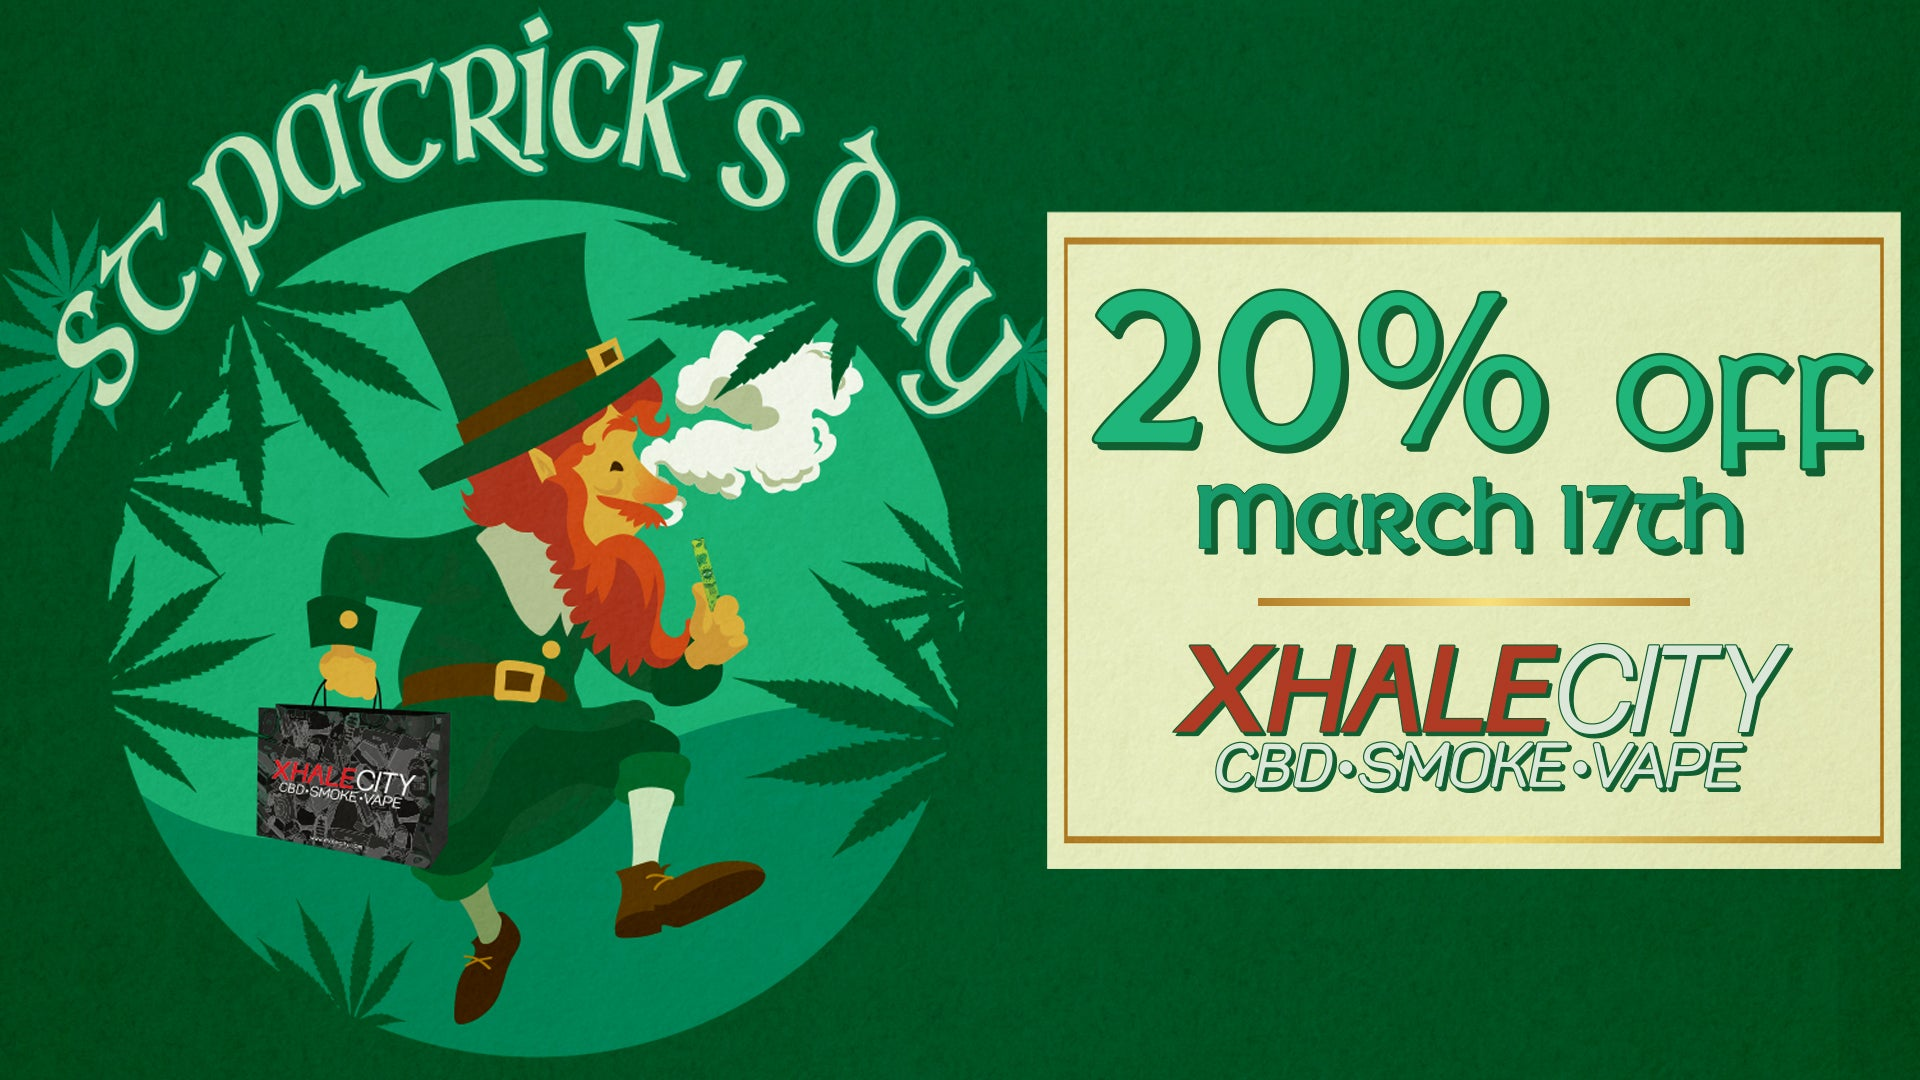 St Patricks Day Sale Event 2020